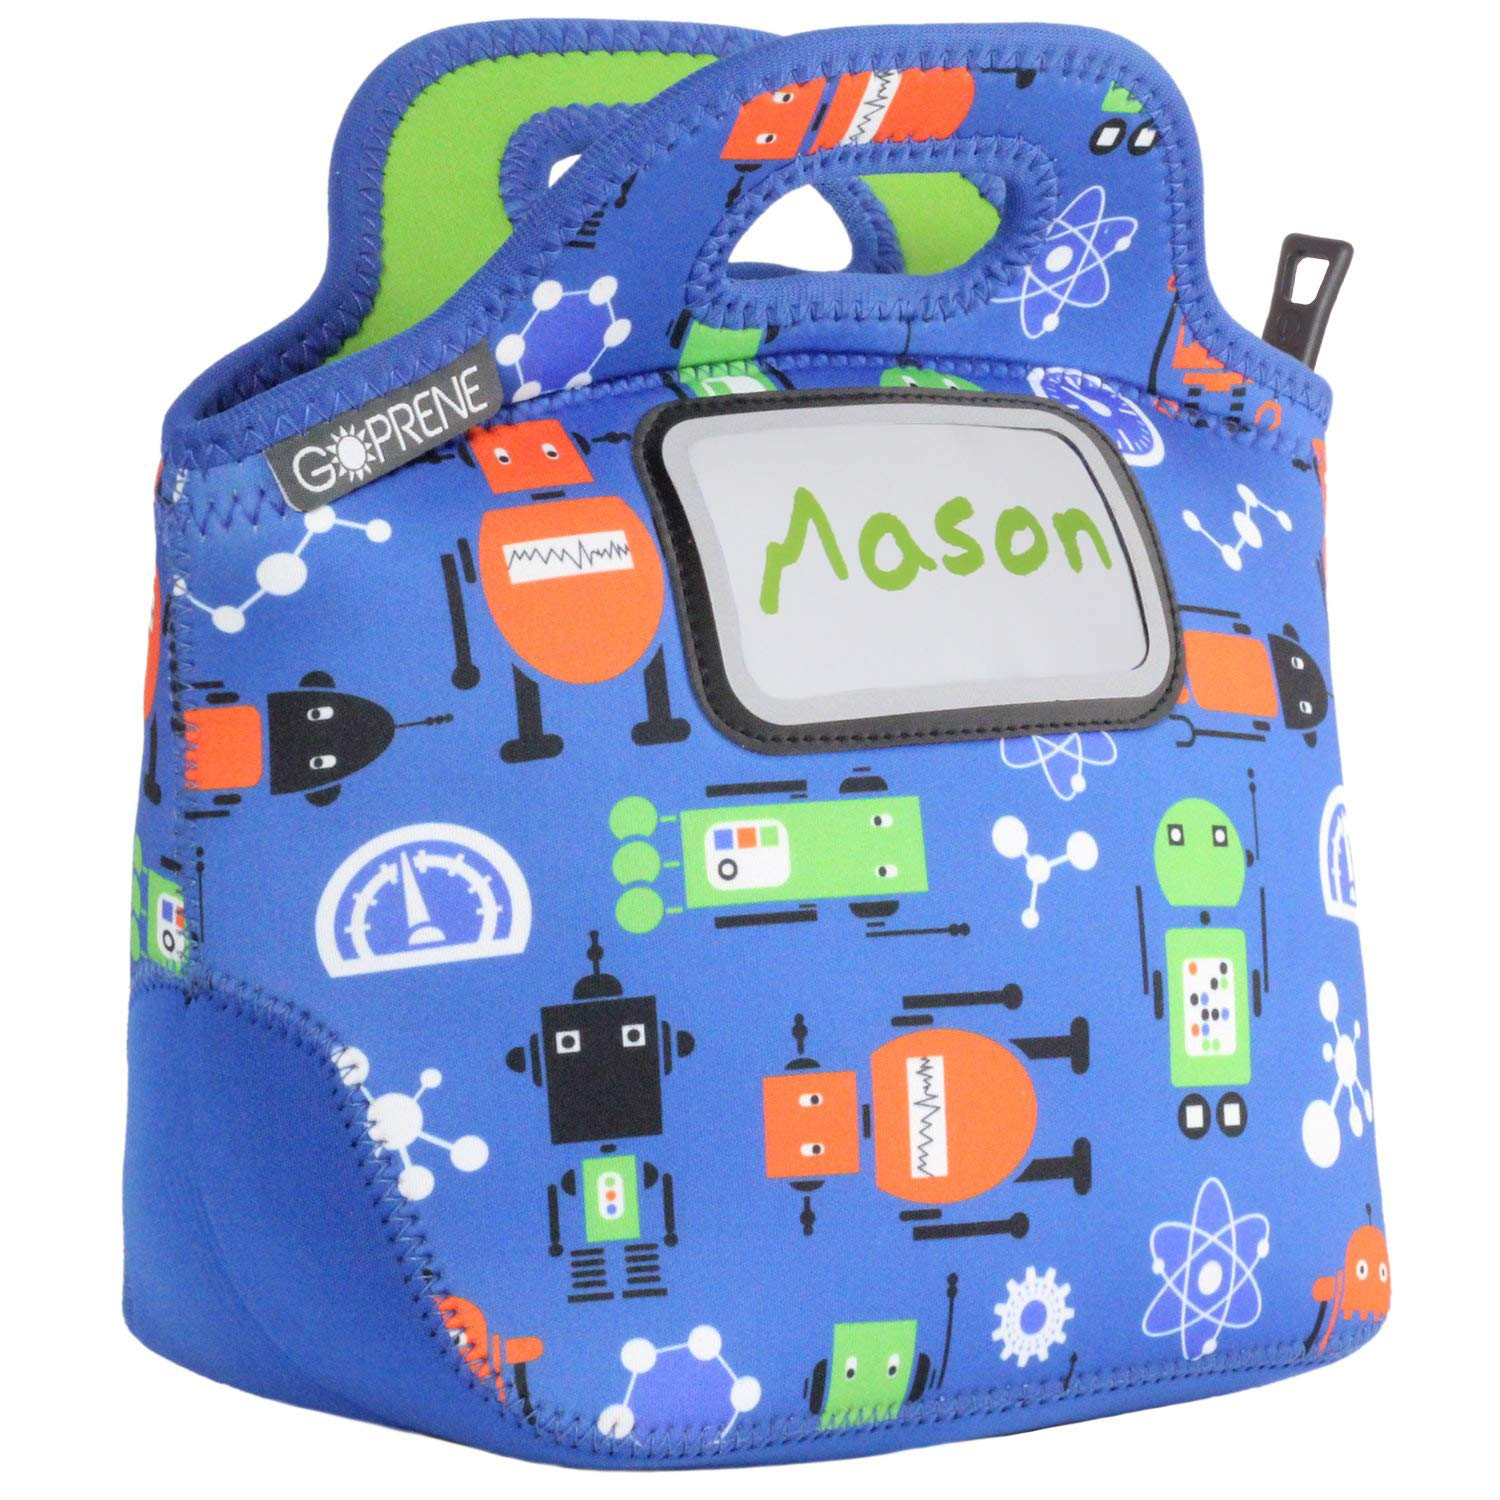 eb7e9d6acde3 Kids Robots Neoprene Lunch Bag with ID Card Pocket | Identi-Tote by GOPRENE  | Insulated, Reusable, Foldable, Washable, Color: ROBOT BLUE, 3 Blank Name  ...